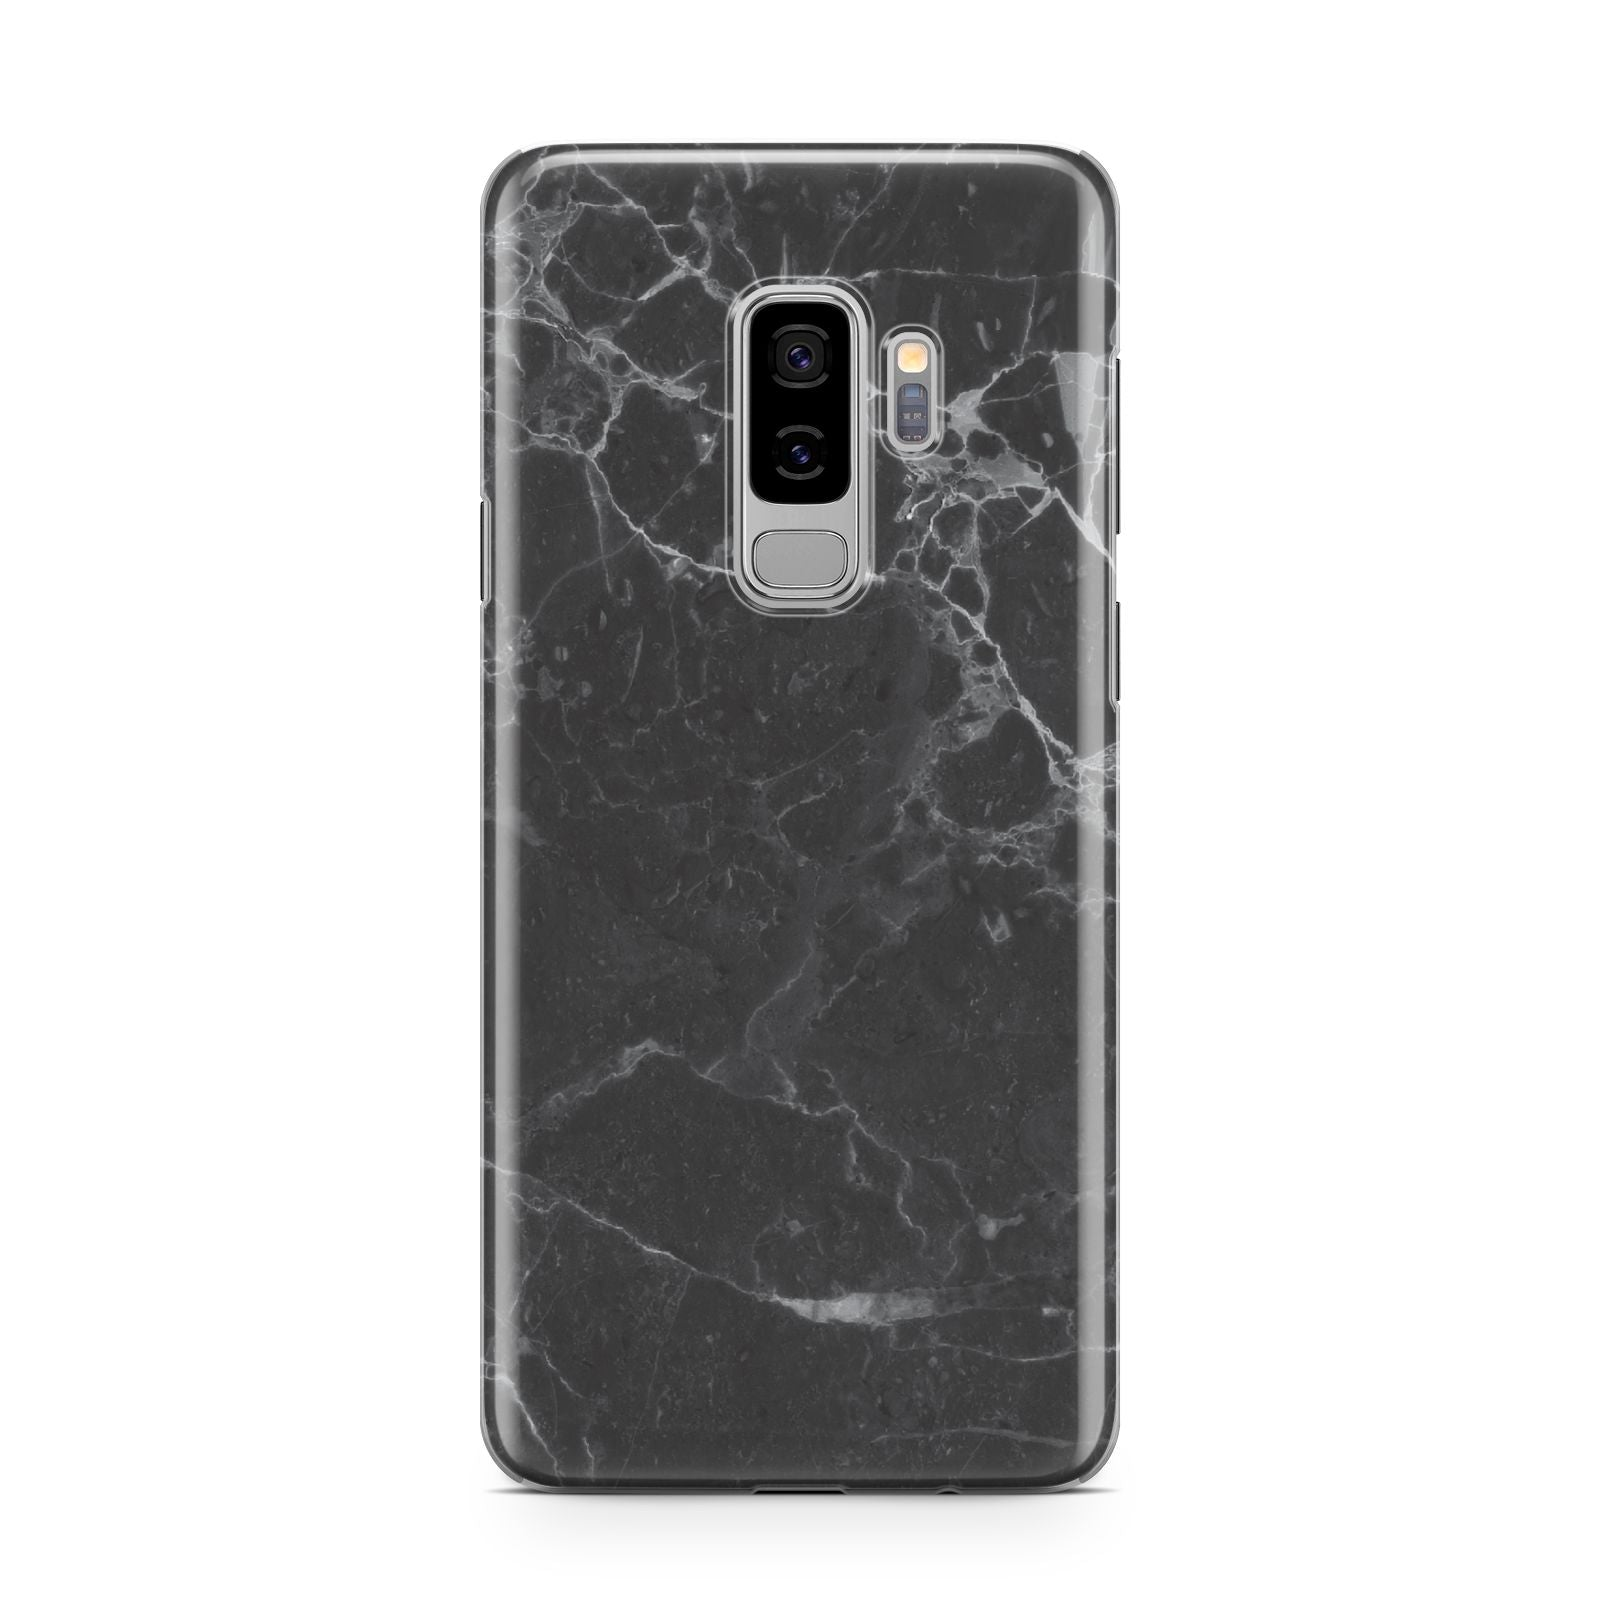 Faux Marble Effect Black Samsung Galaxy S9 Plus Case on Silver phone